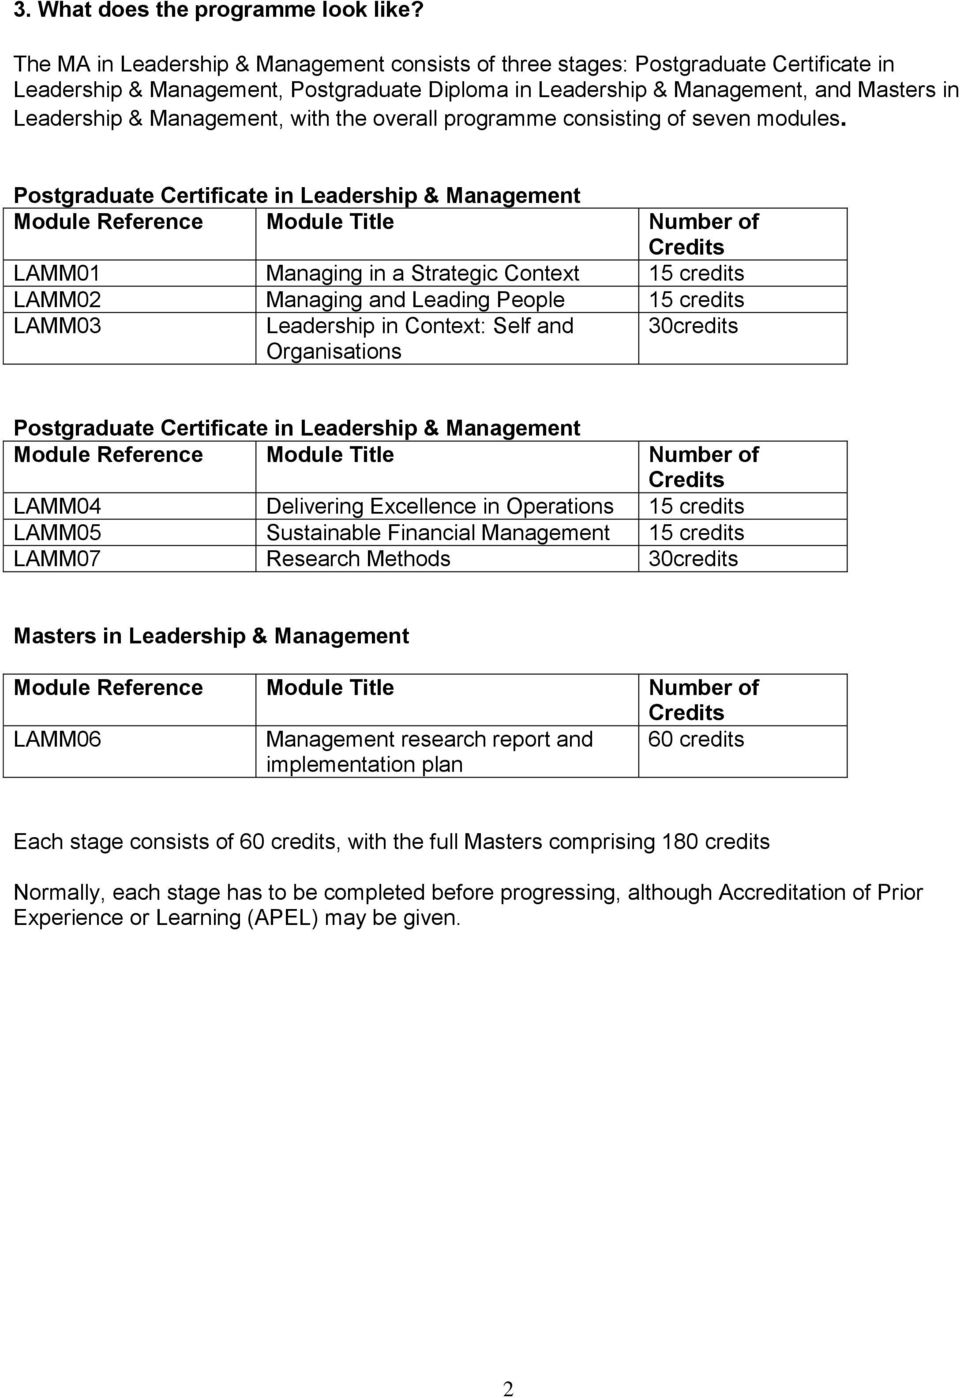 Management, with the overall programme consisting of seven modules.